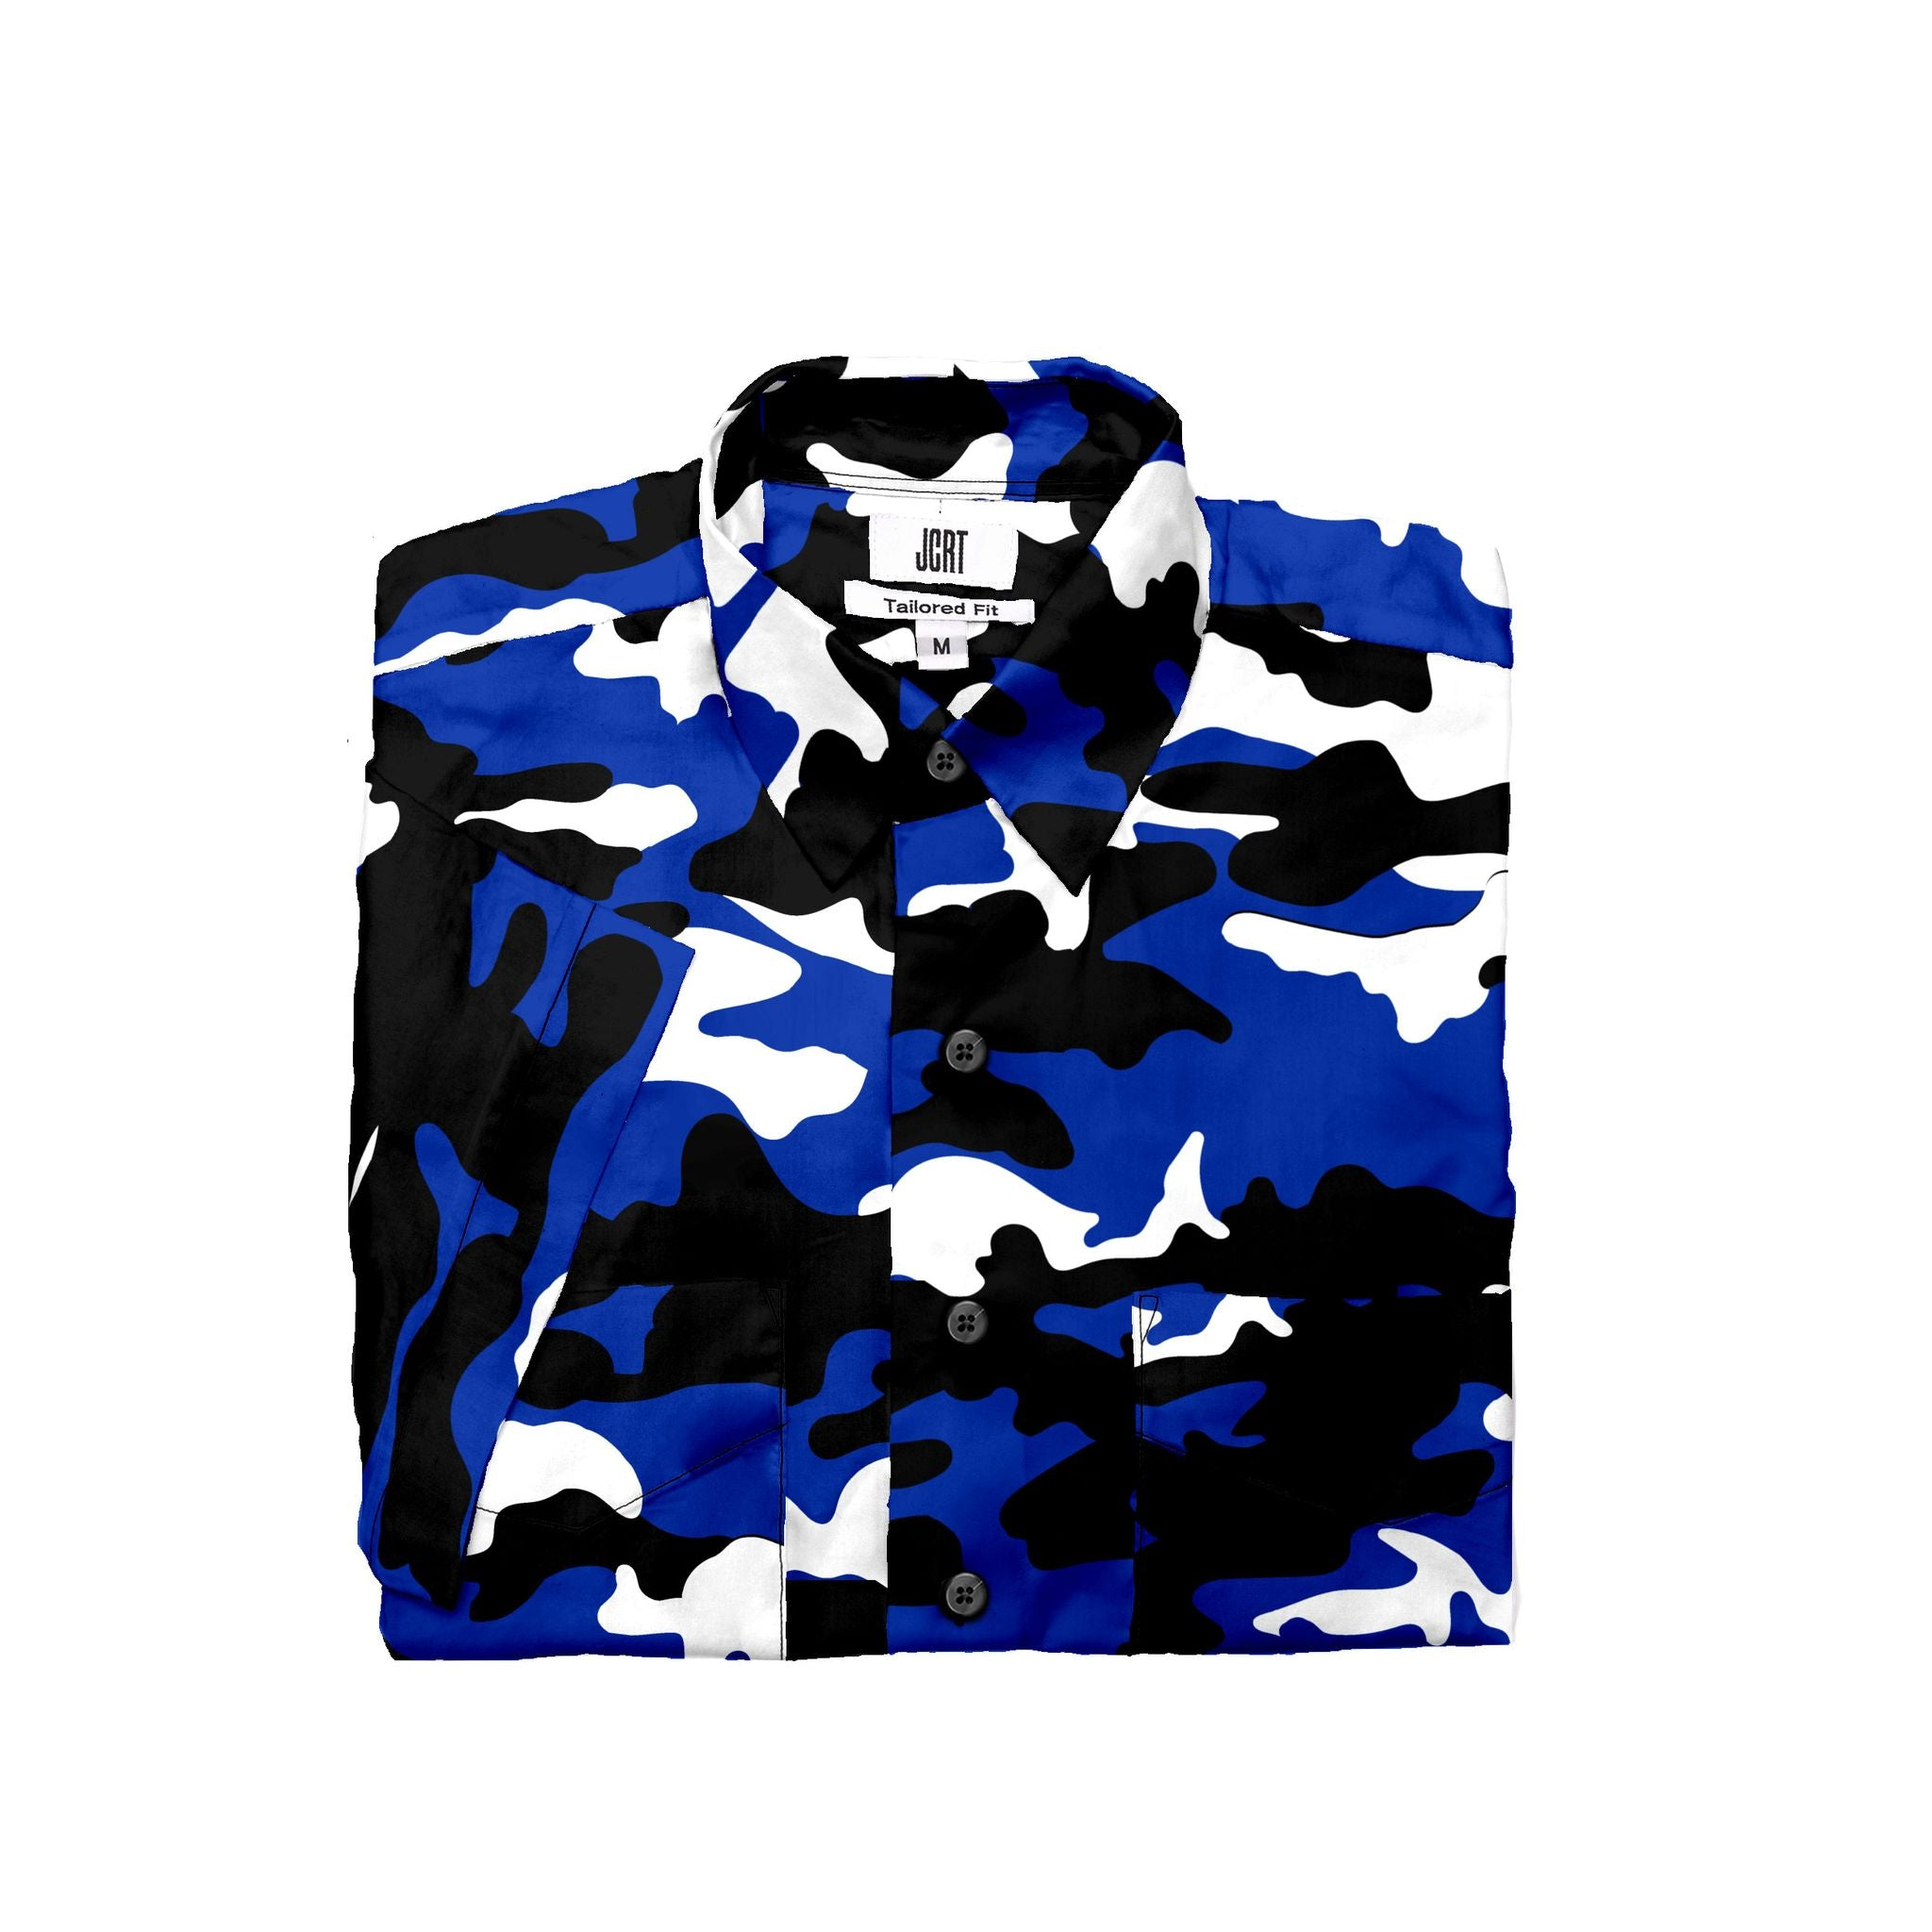 The Blue Devils Camouflage Short Sleeve Shirt